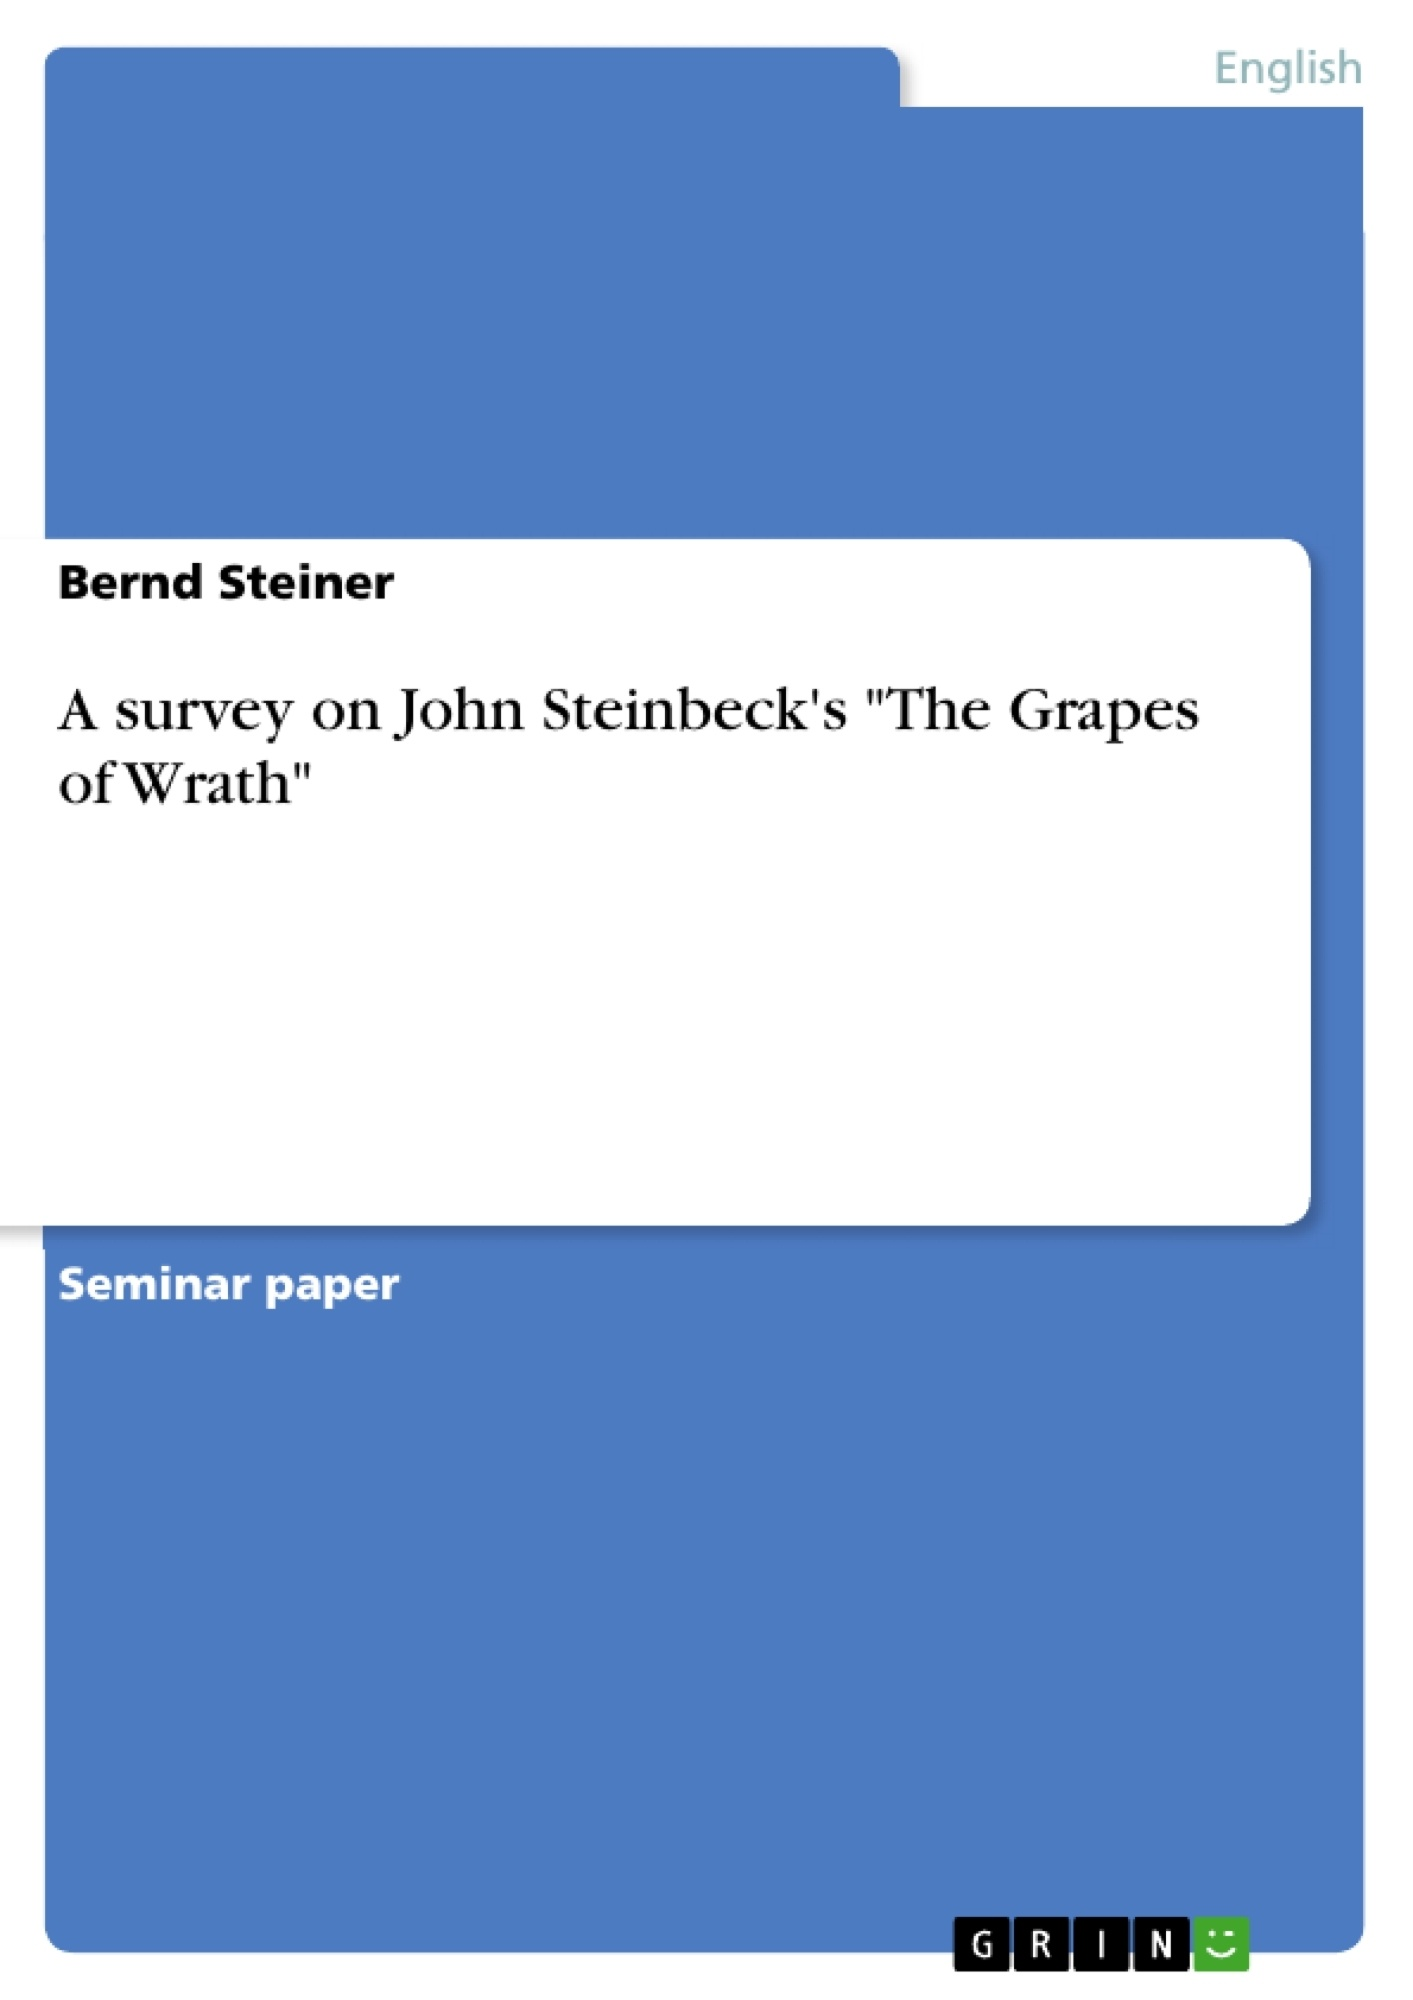 a survey on john steinbeck s the grapes of wrath publish your a survey on john steinbeck s the grapes of wrath publish your master s thesis bachelor s thesis essay or term paper